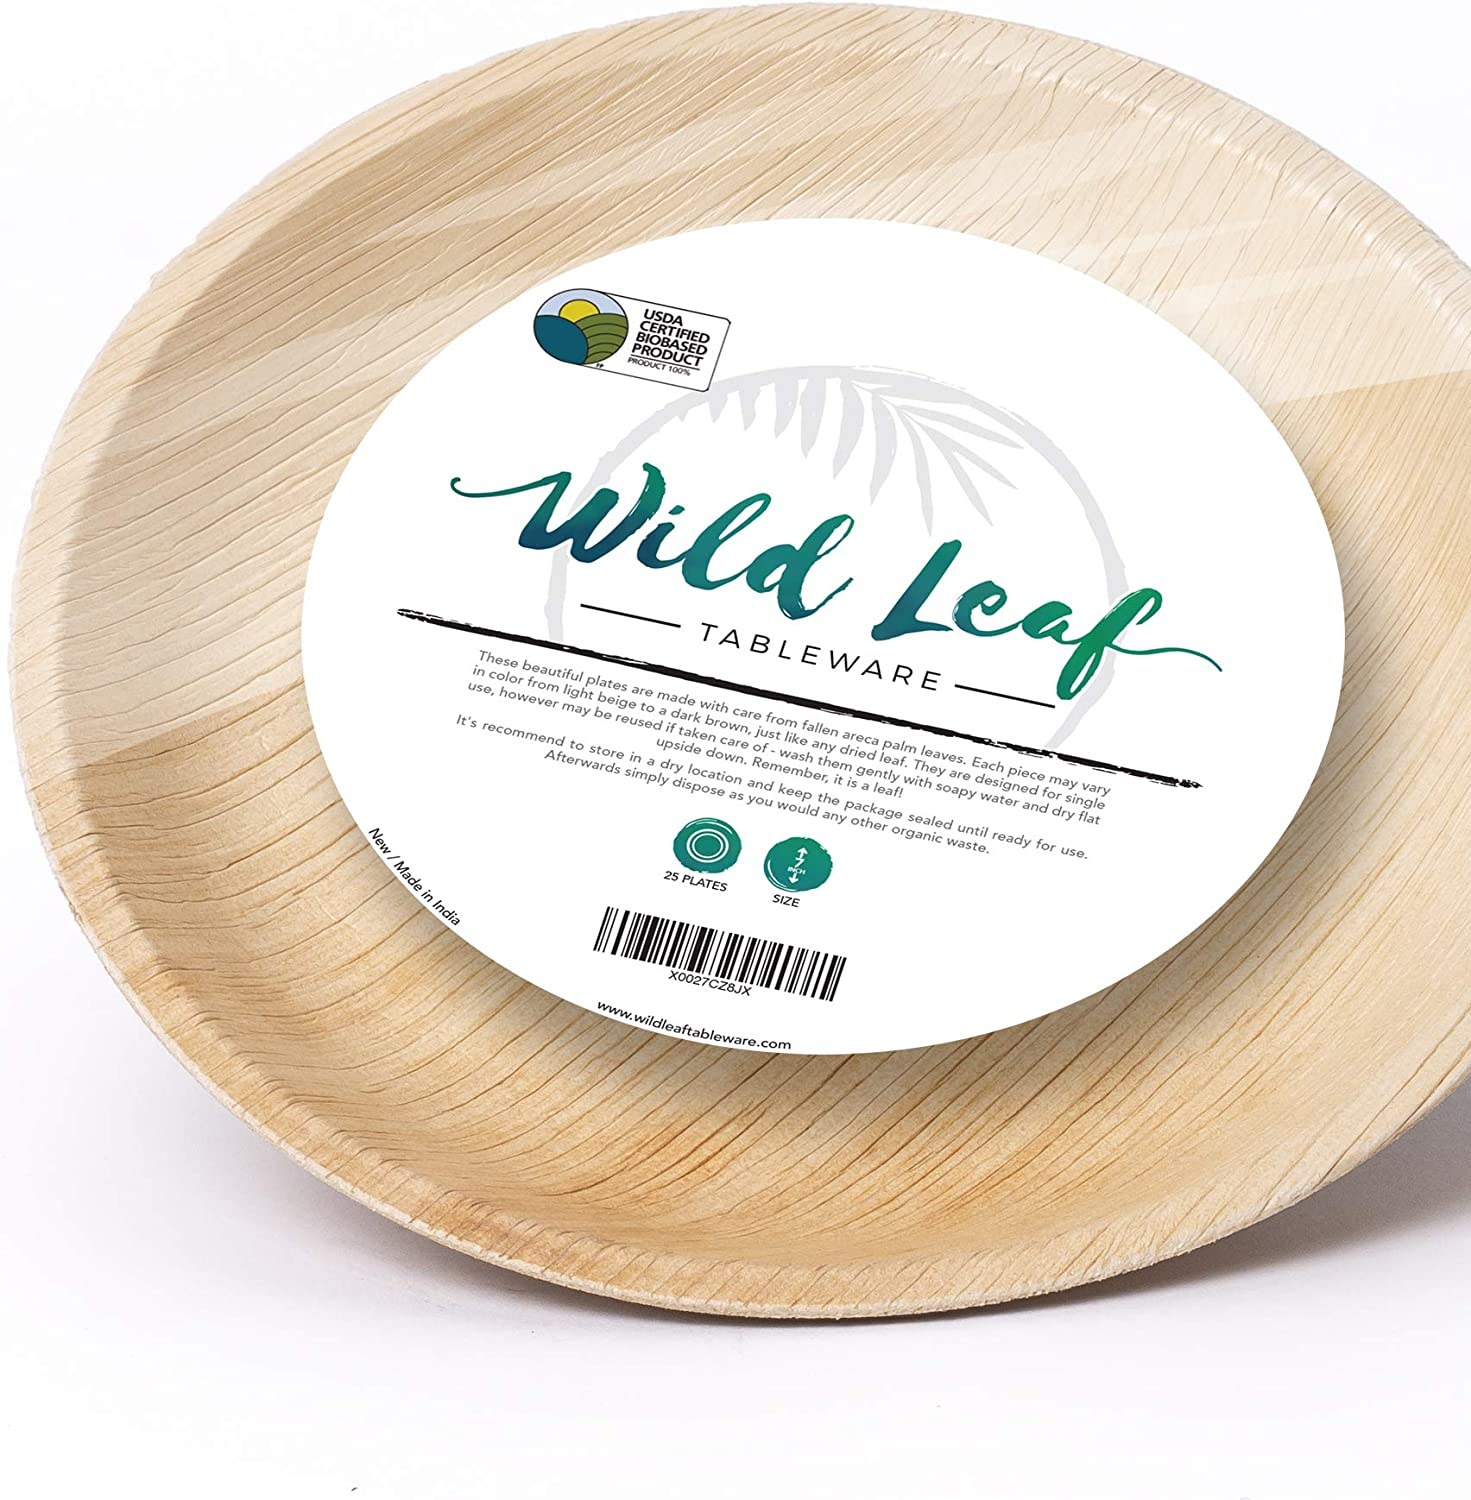 Wild Leaf Tableware Disposable Bamboo Look Plates - 7 Inch Round - Elegant, Sturdy, Biodegradable, Compostable and Chemical Free, Natural Alternative to Plastic and Paper - Pack of 25